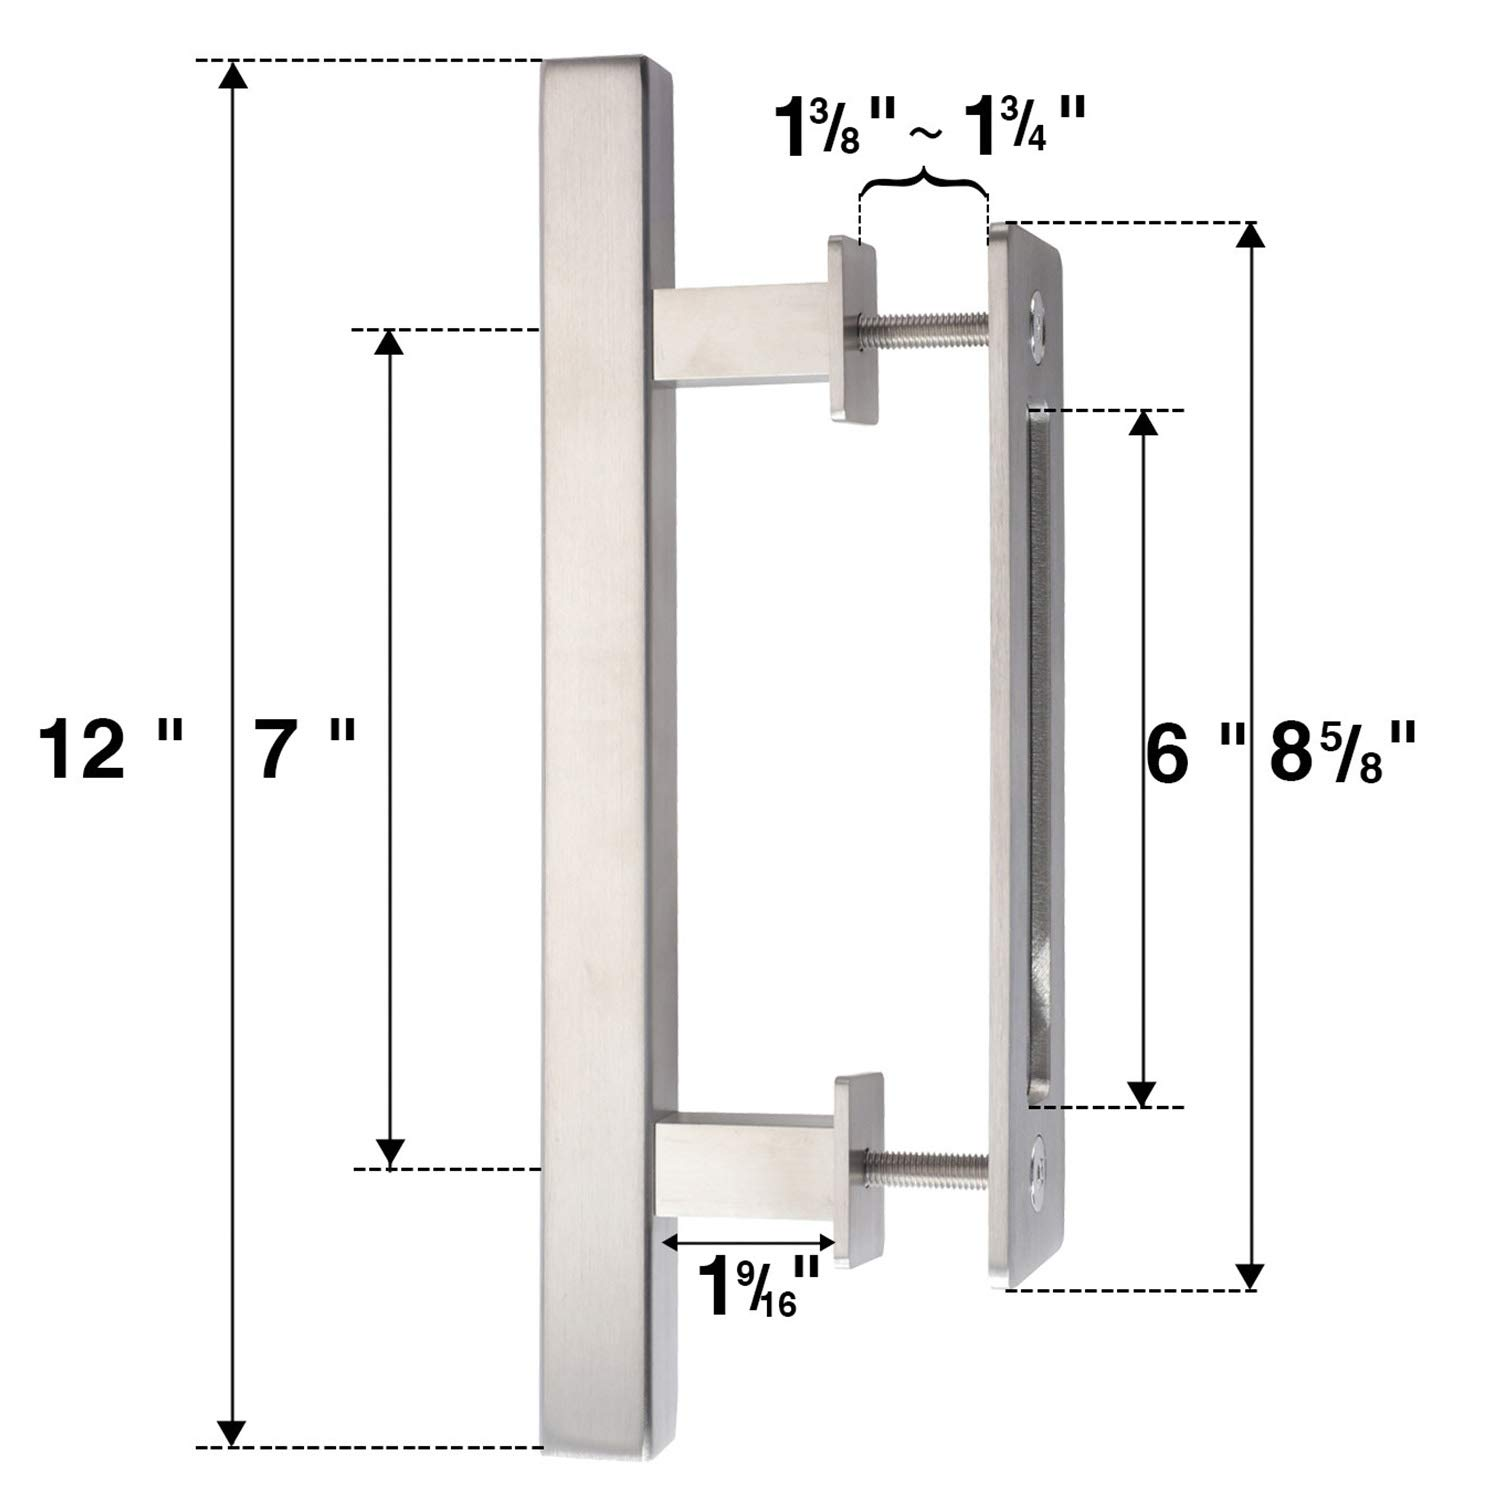 Easelife 12 Set With Pull And Flushstainless Steel Door Knob Latch Diagram Of Release Barn Hardware Handle Square Gray Home Improvement